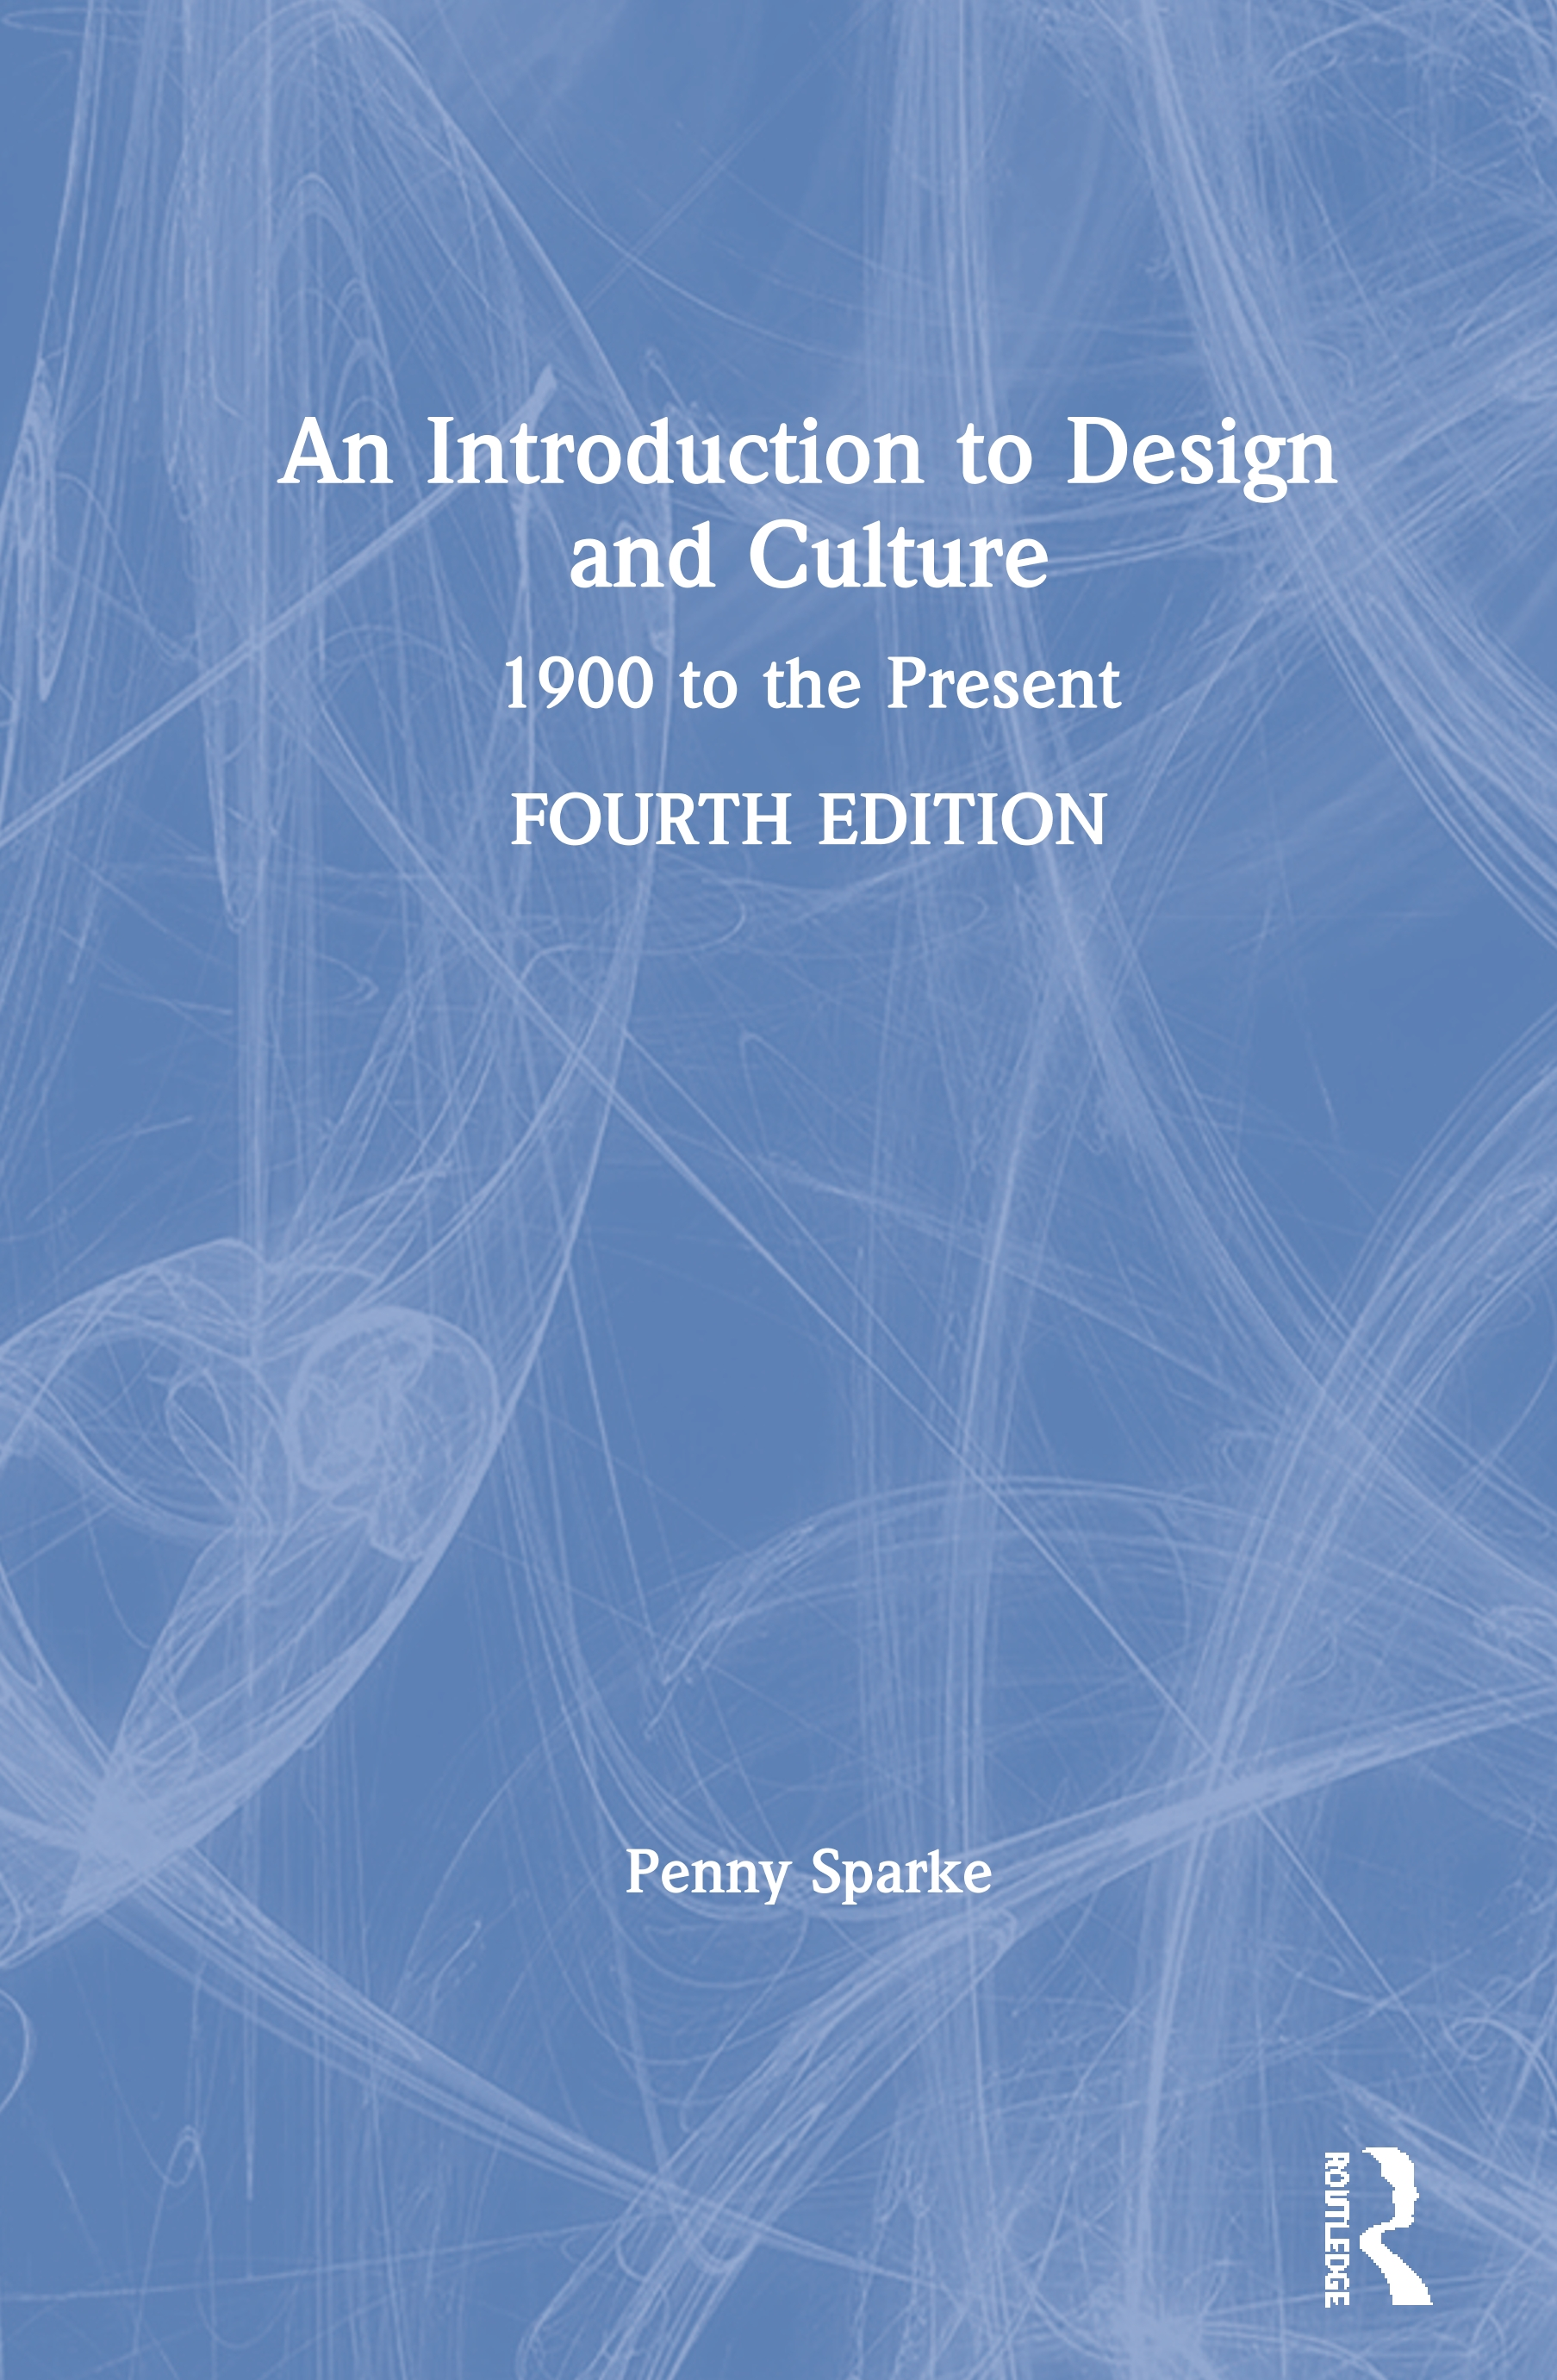 An Introduction to Design and Culture: 1900 to the Present book cover